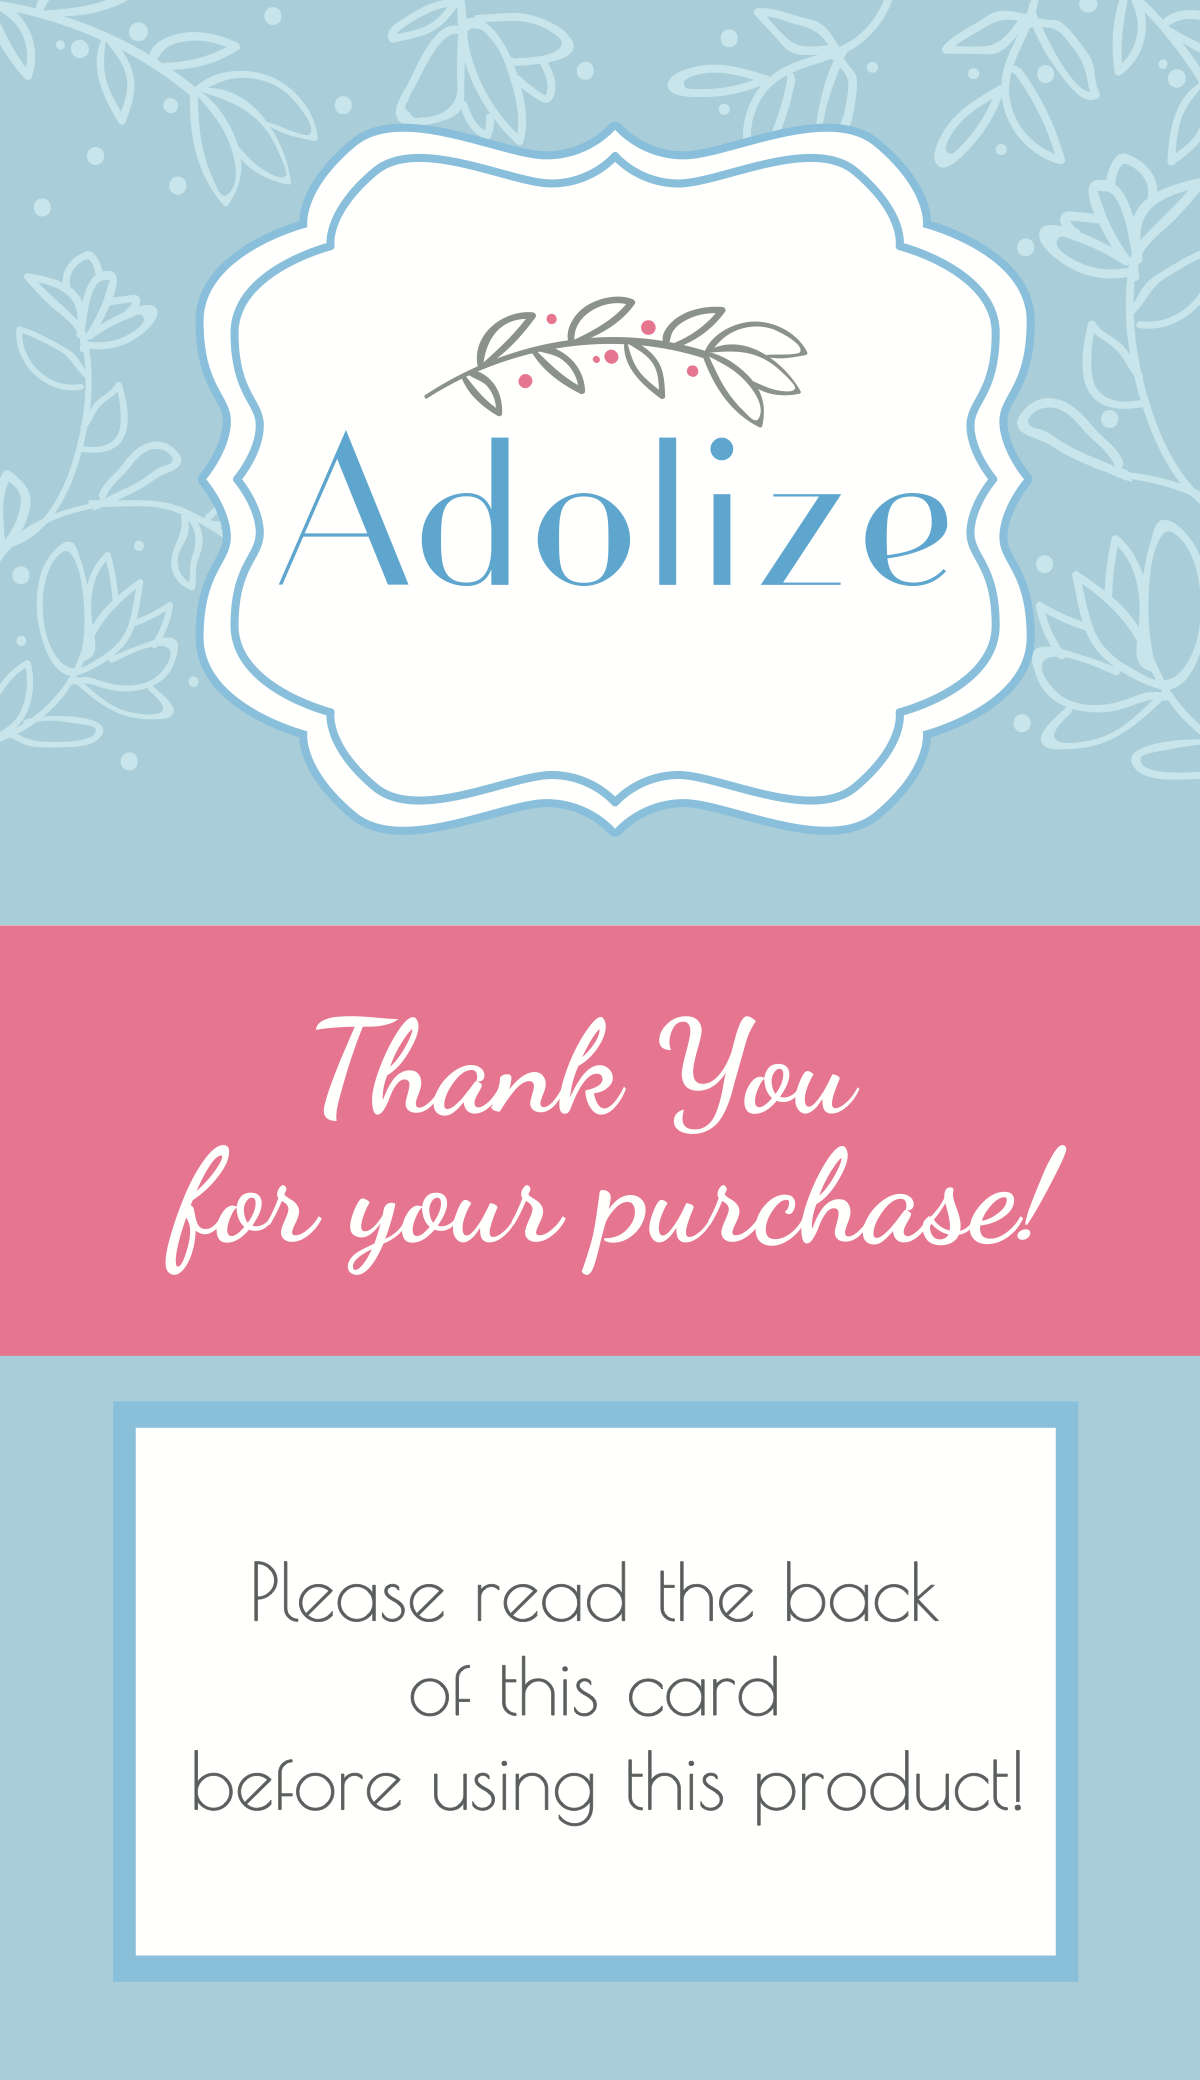 ADOLIZE double-sided insert, incentive insert